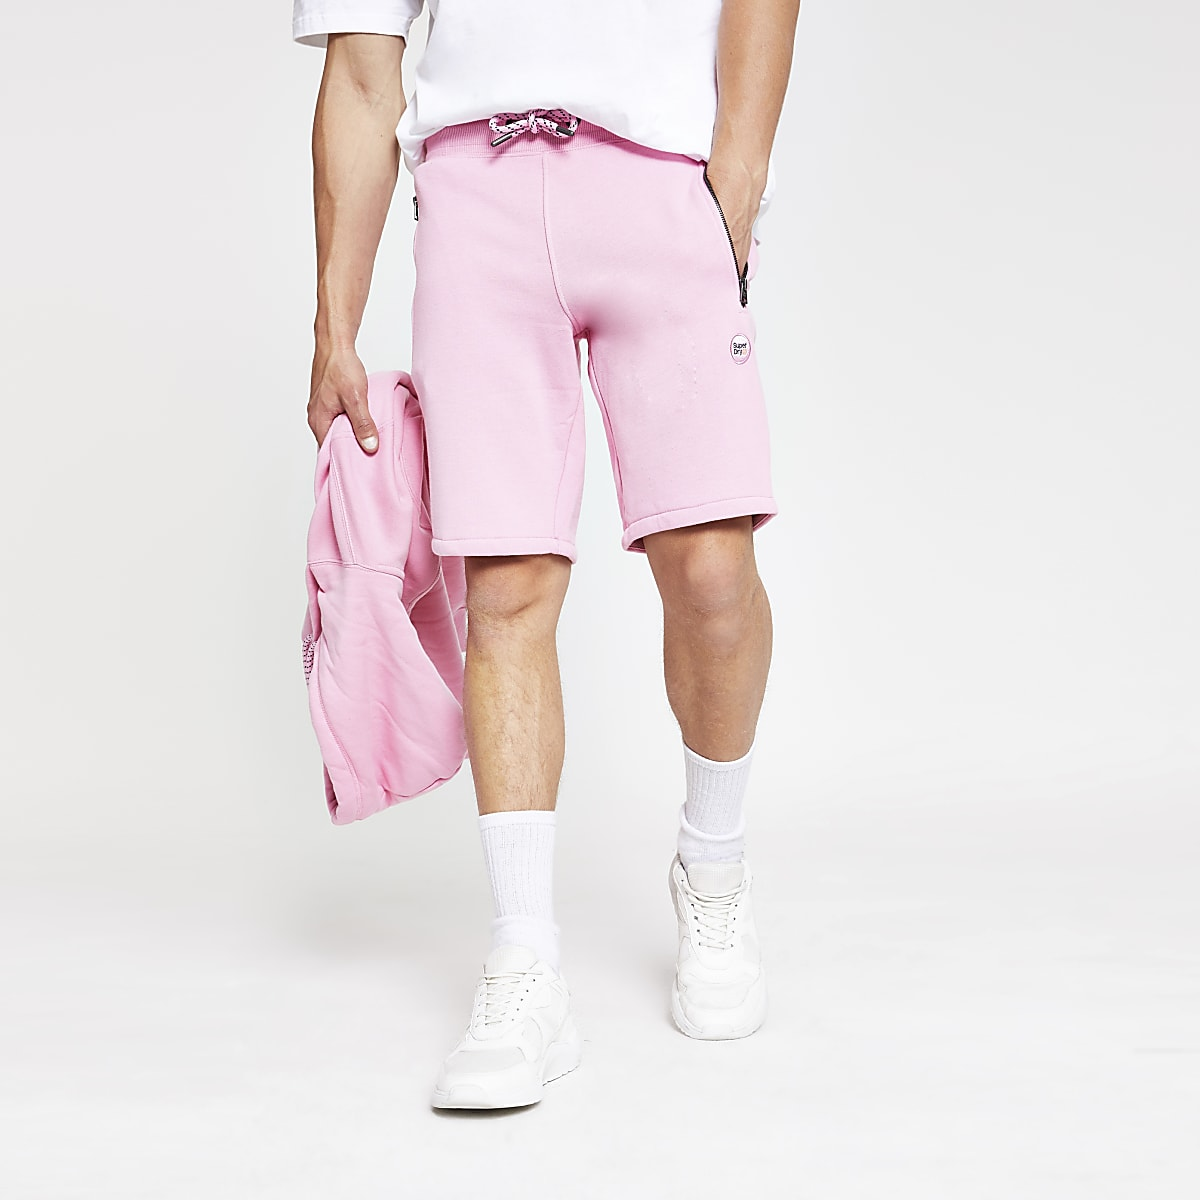 Superdry Collective pink jersey shorts